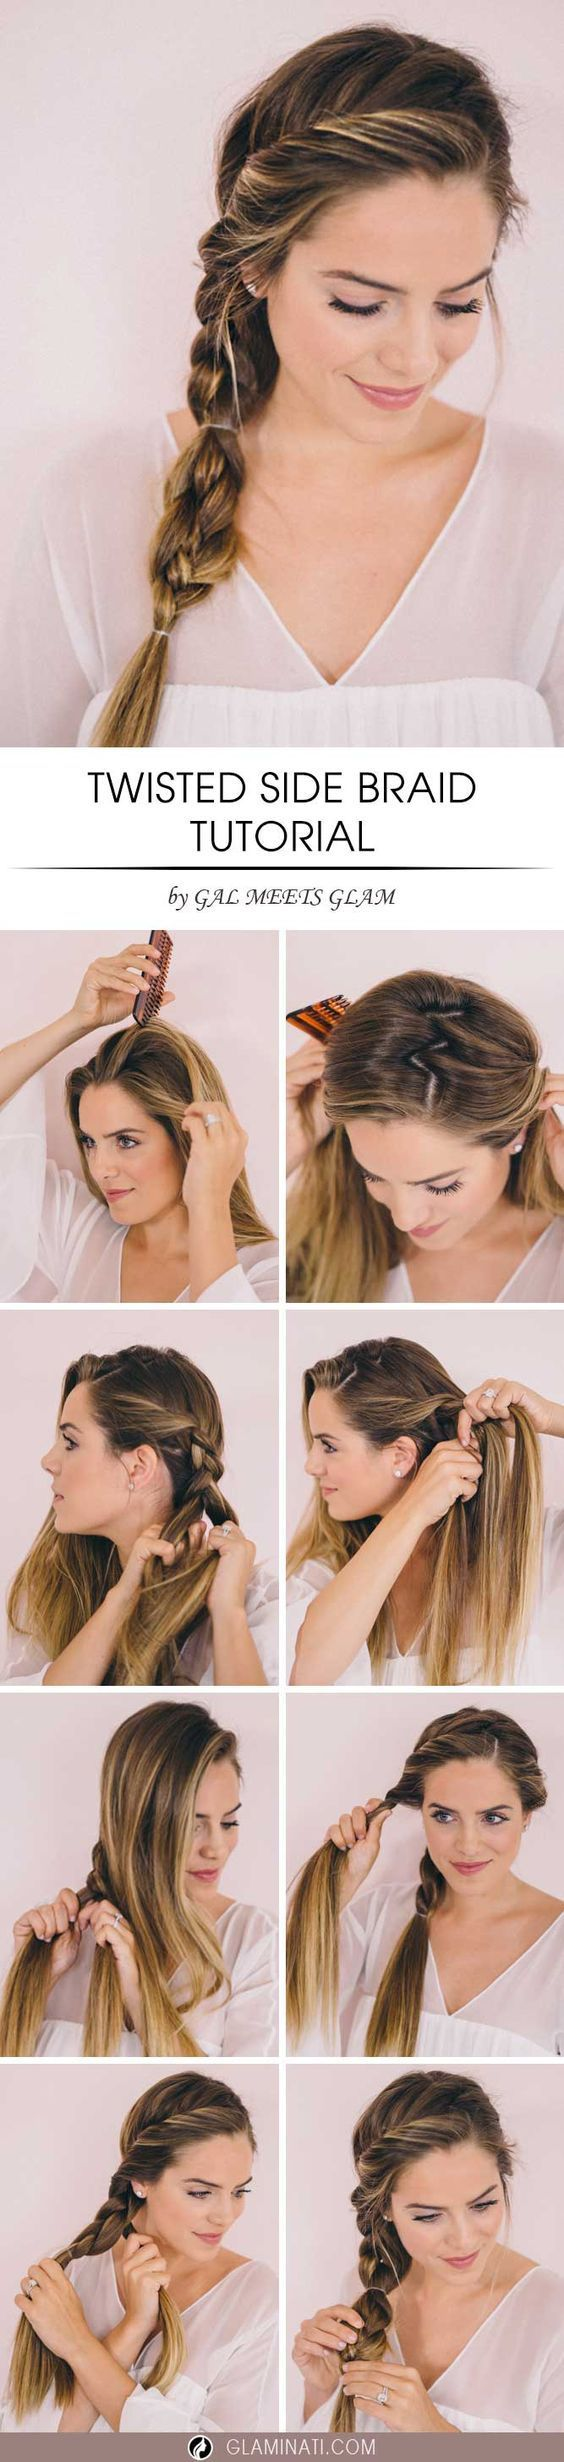 30 Medium Length Hairstyles Visit My Channel For More Other Medium Hairstyle Tutoriels Coiffure Coiffure Coiffure Dame